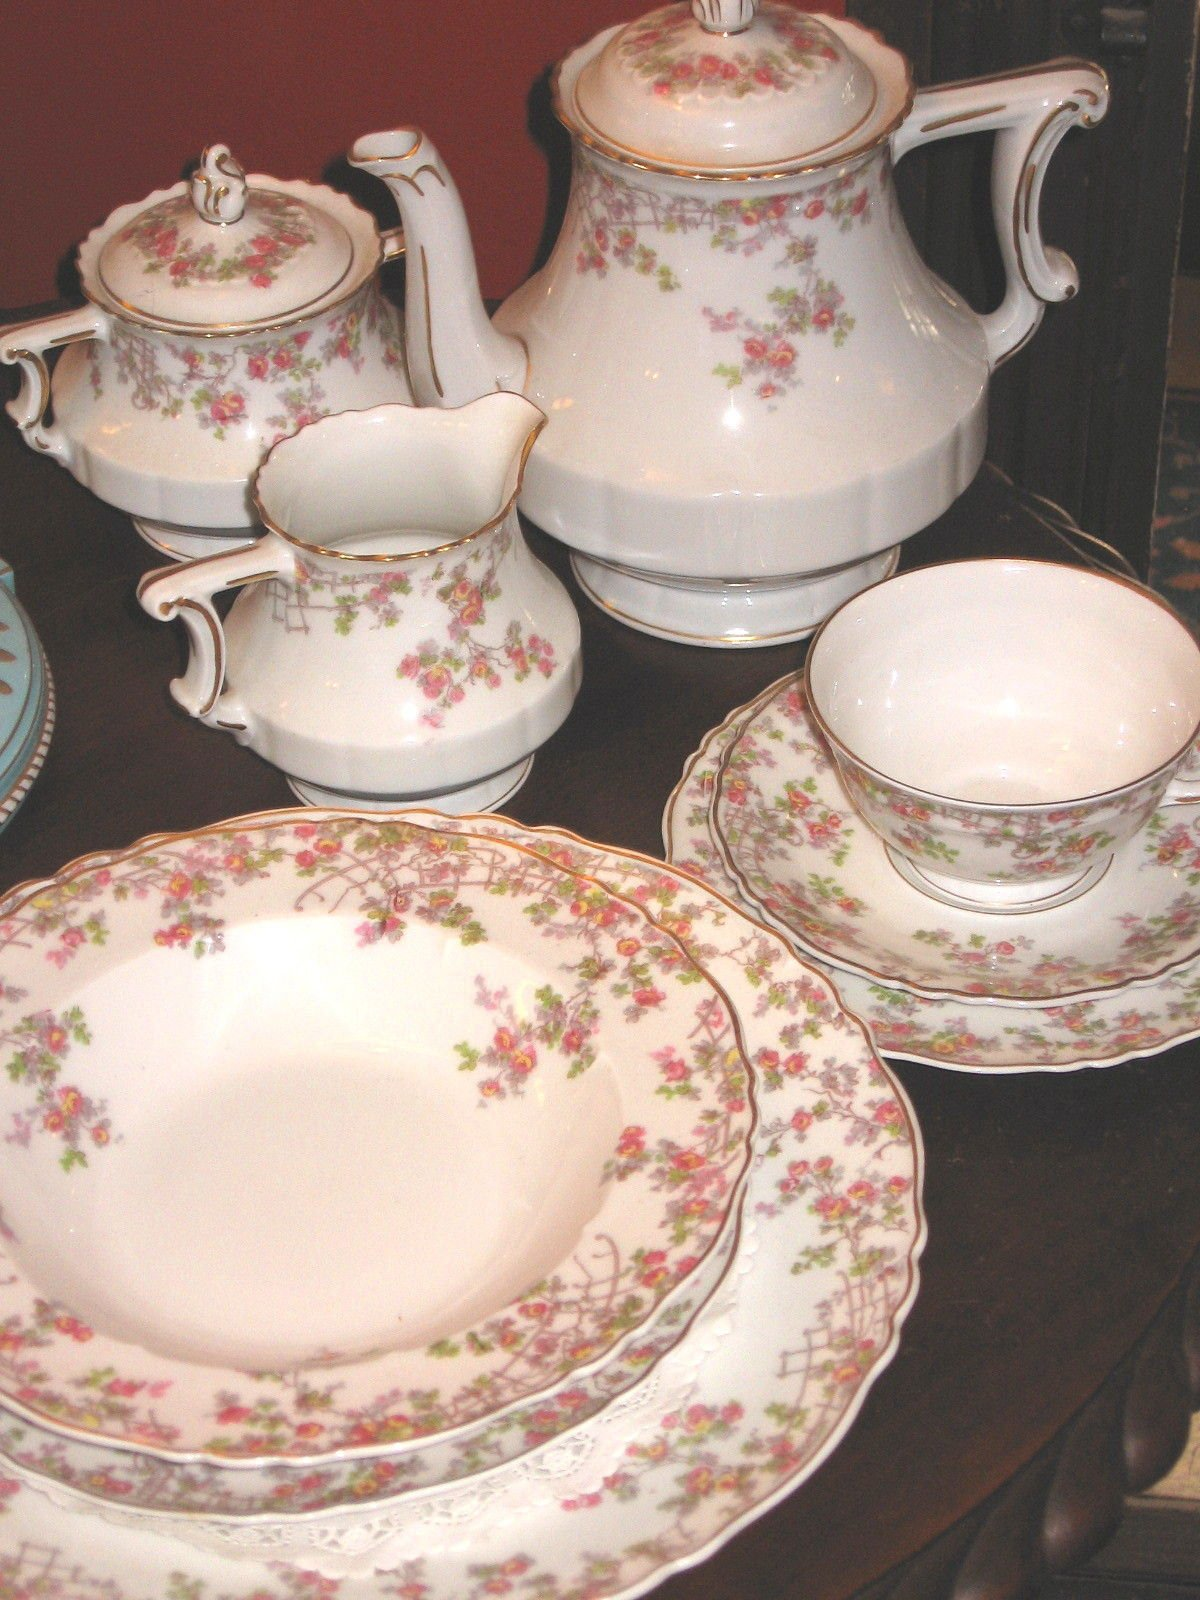 ANTIQUES u2014 Are You Sure You Want to Sell That Limoges China? & ANTIQUES u2014 Are You Sure You Want to Sell That Limoges China ...